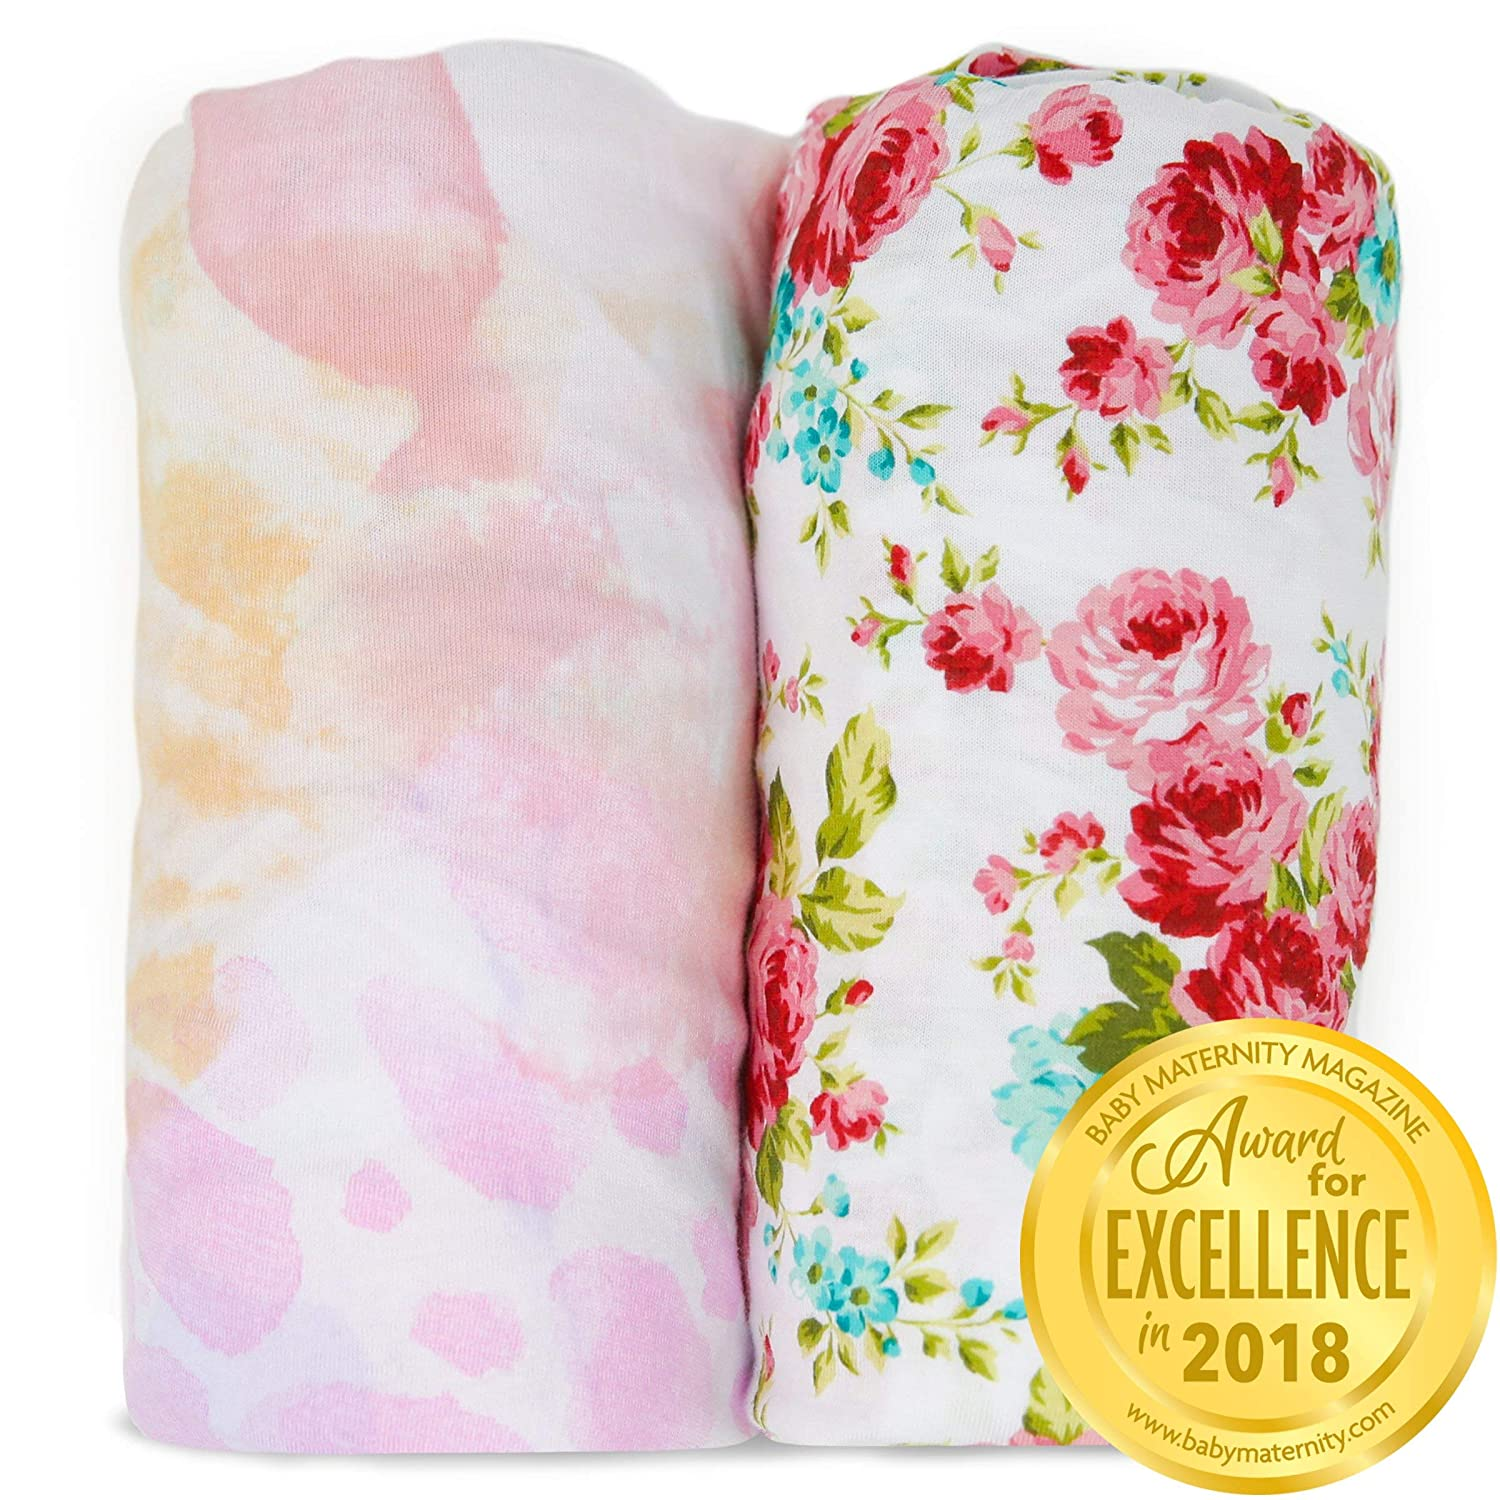 Changing Pad Covers Sheets - Premium Jersey Knit Cotton Change Pad Covers - Super Soft - Safe for Babies - Diaper Changing Pad Cover for Baby Change Table Pads - 2 Pack Girl Cradle Sheet Set - Fleur